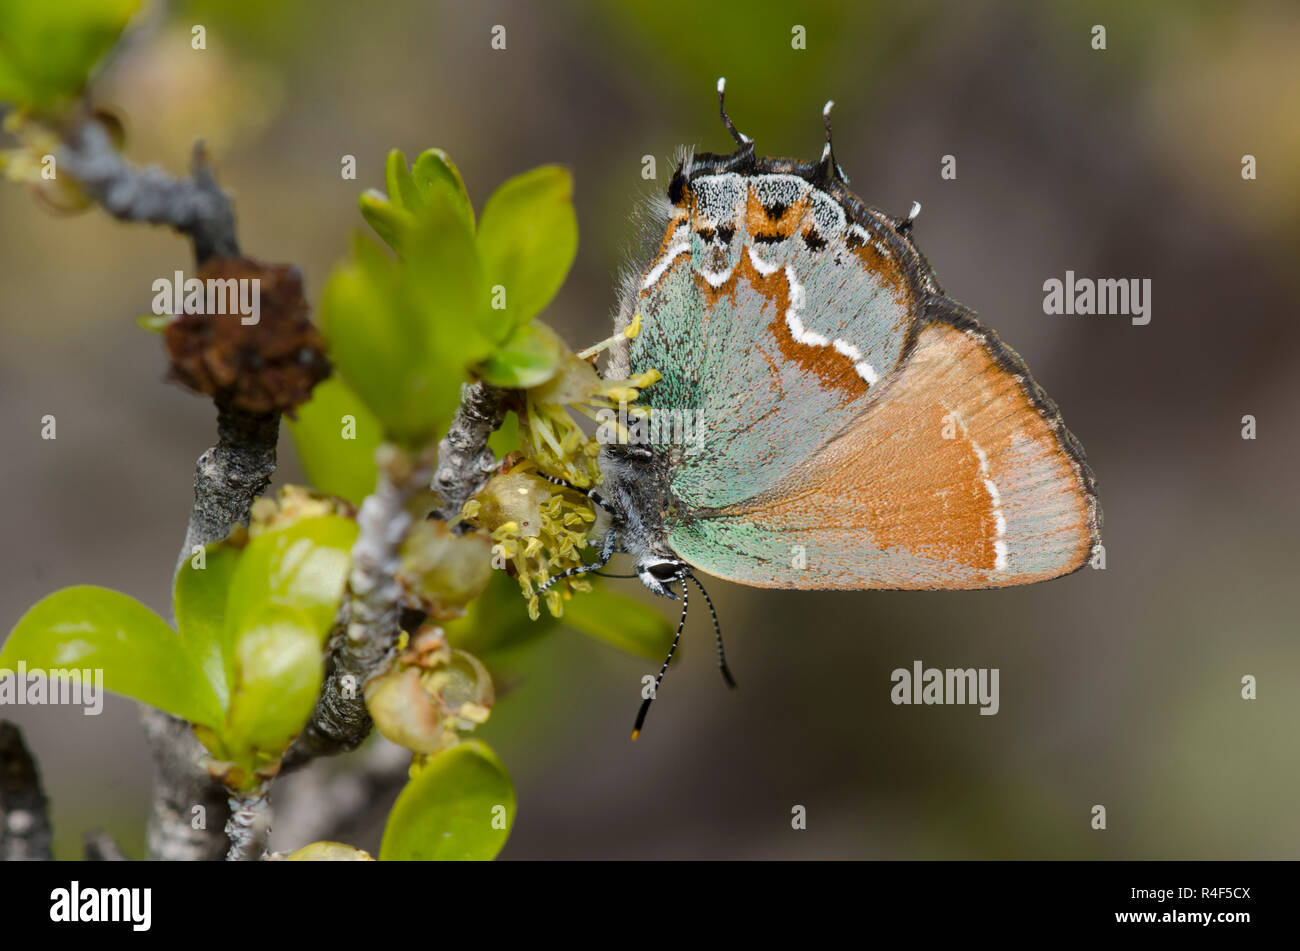 Juniper Hairstreak, Callophrys gryneus, nectaring from New Mexico Olive, Forestiera pubescens Stock Photo